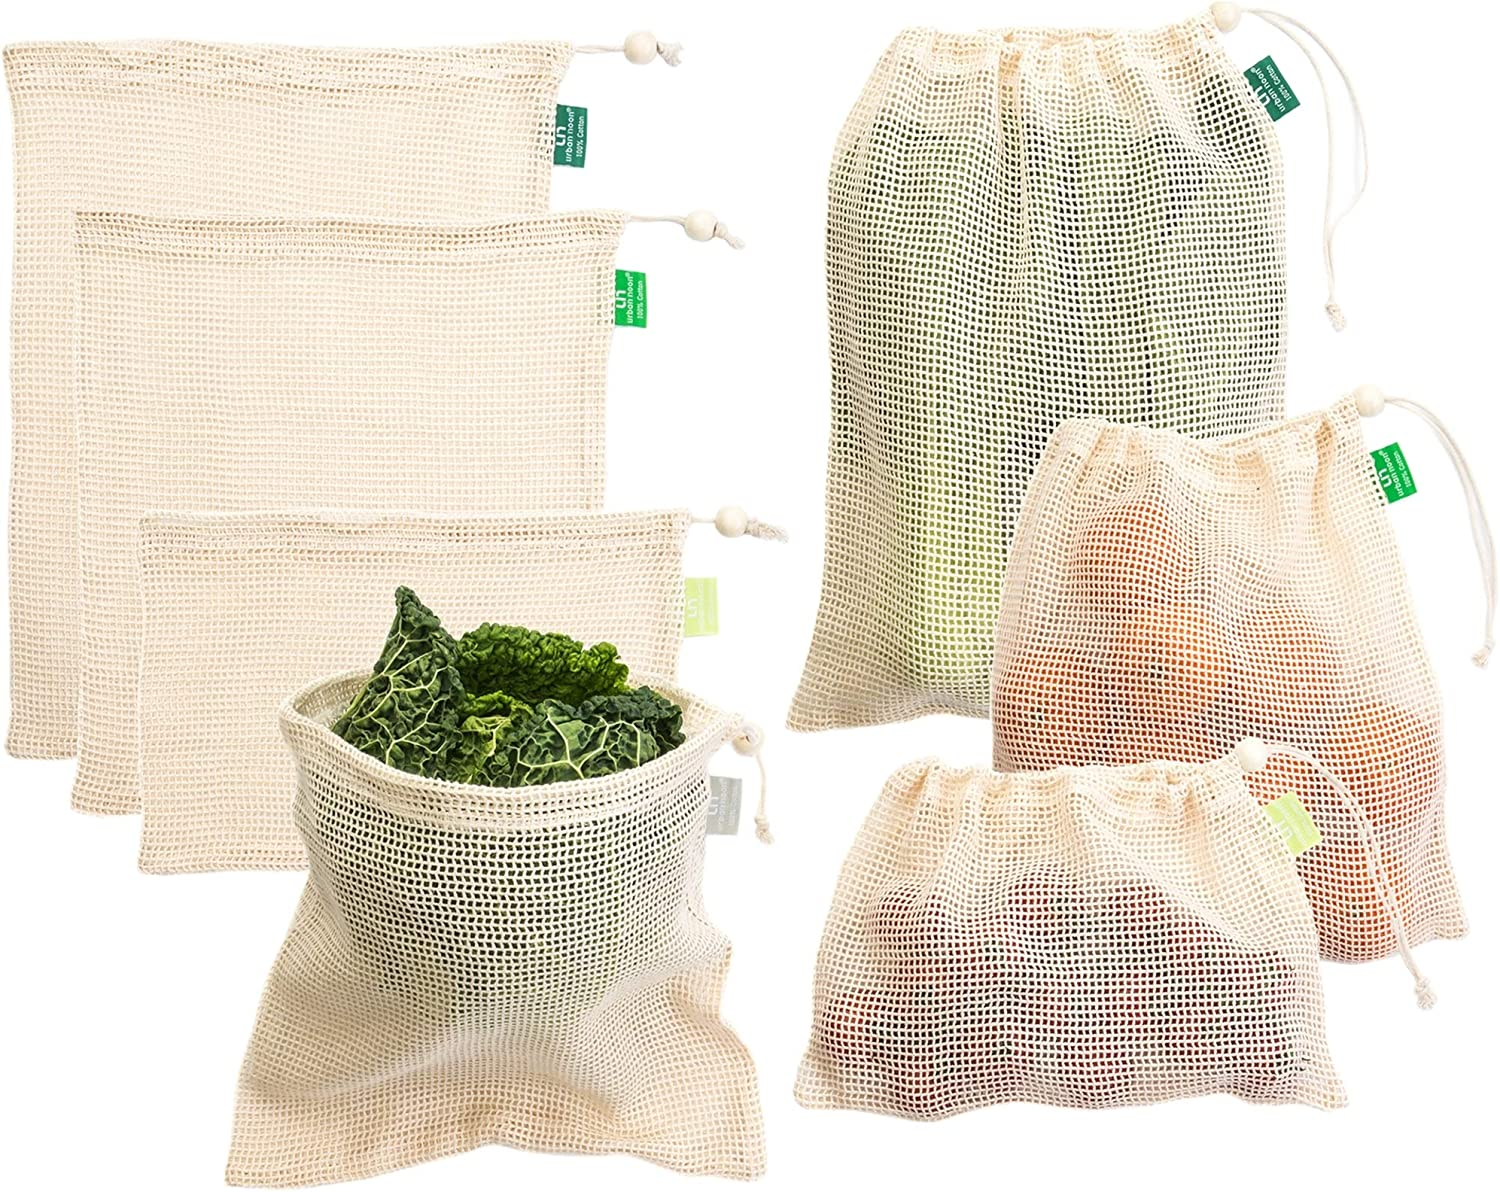 Cotton Produce Bags - Reusable Mesh Produce Bags - 4 Sizes in Set of 7 + 1 Muslin Storage Bag - Strong - Durable - with Drawstring - Tare Weight on Tag - for Grocery Shopping and Storage